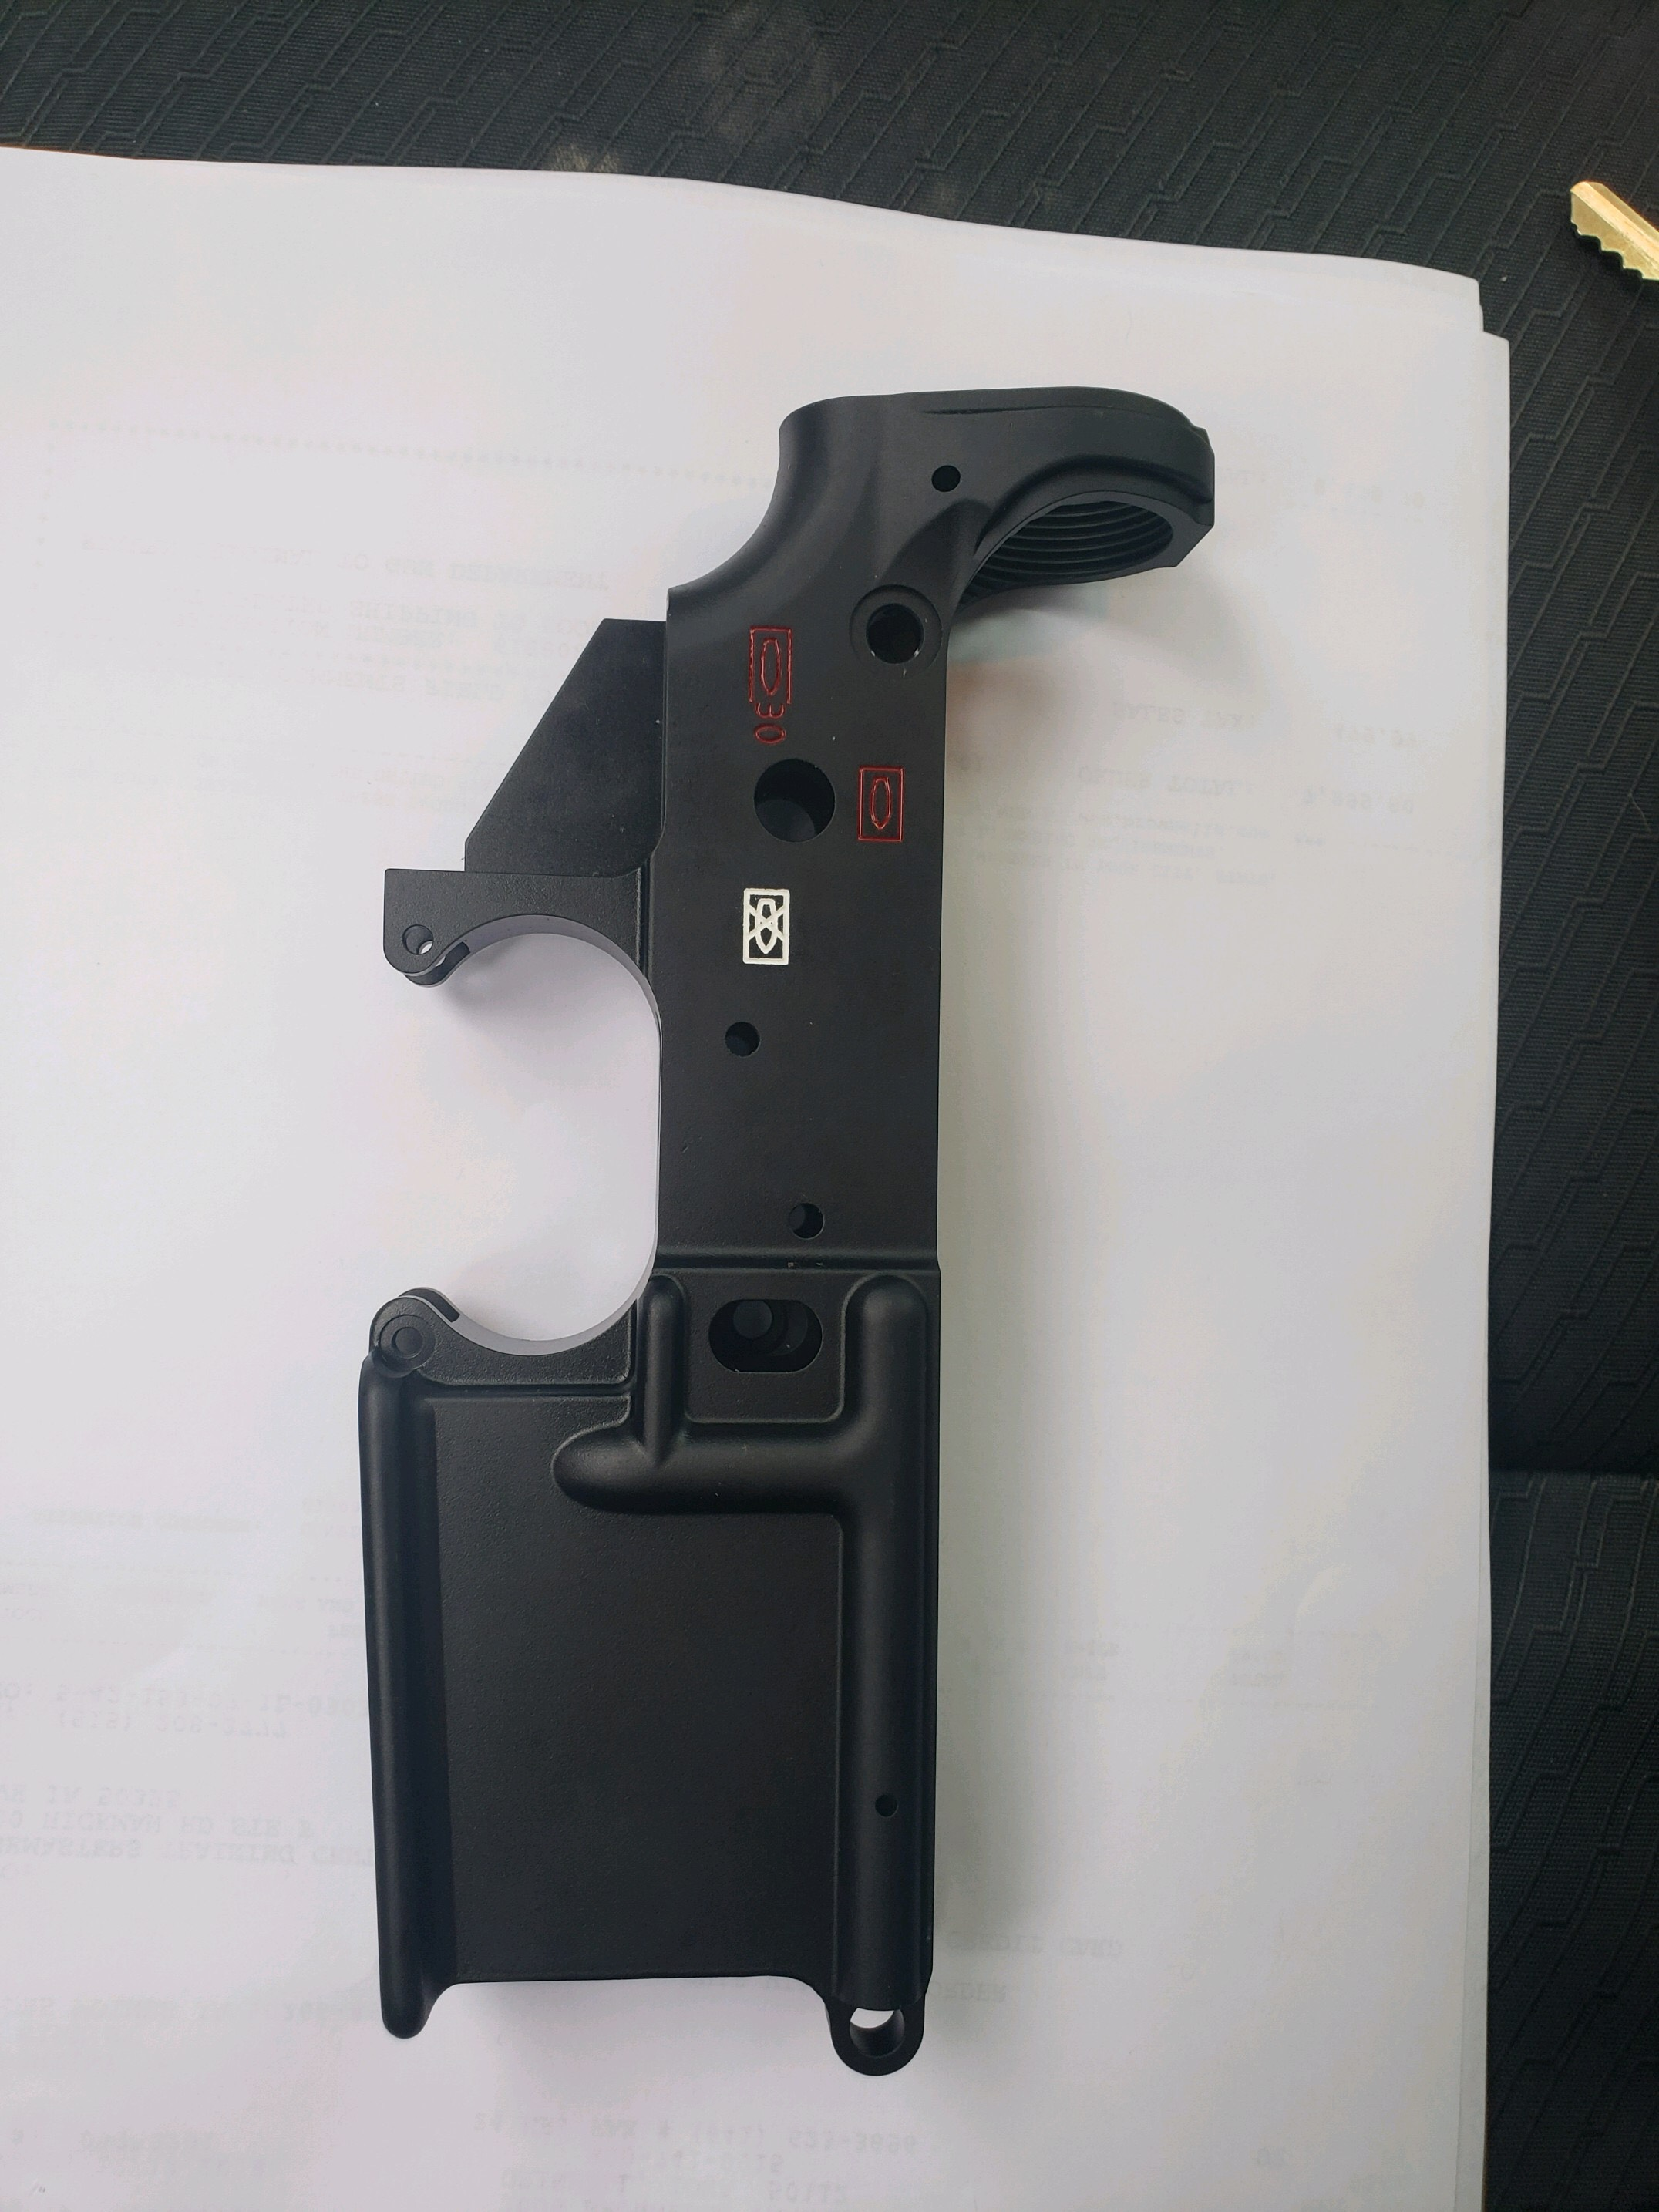 Brownells 416 kits and lowers on sale 11/12-brn4-7.jpg